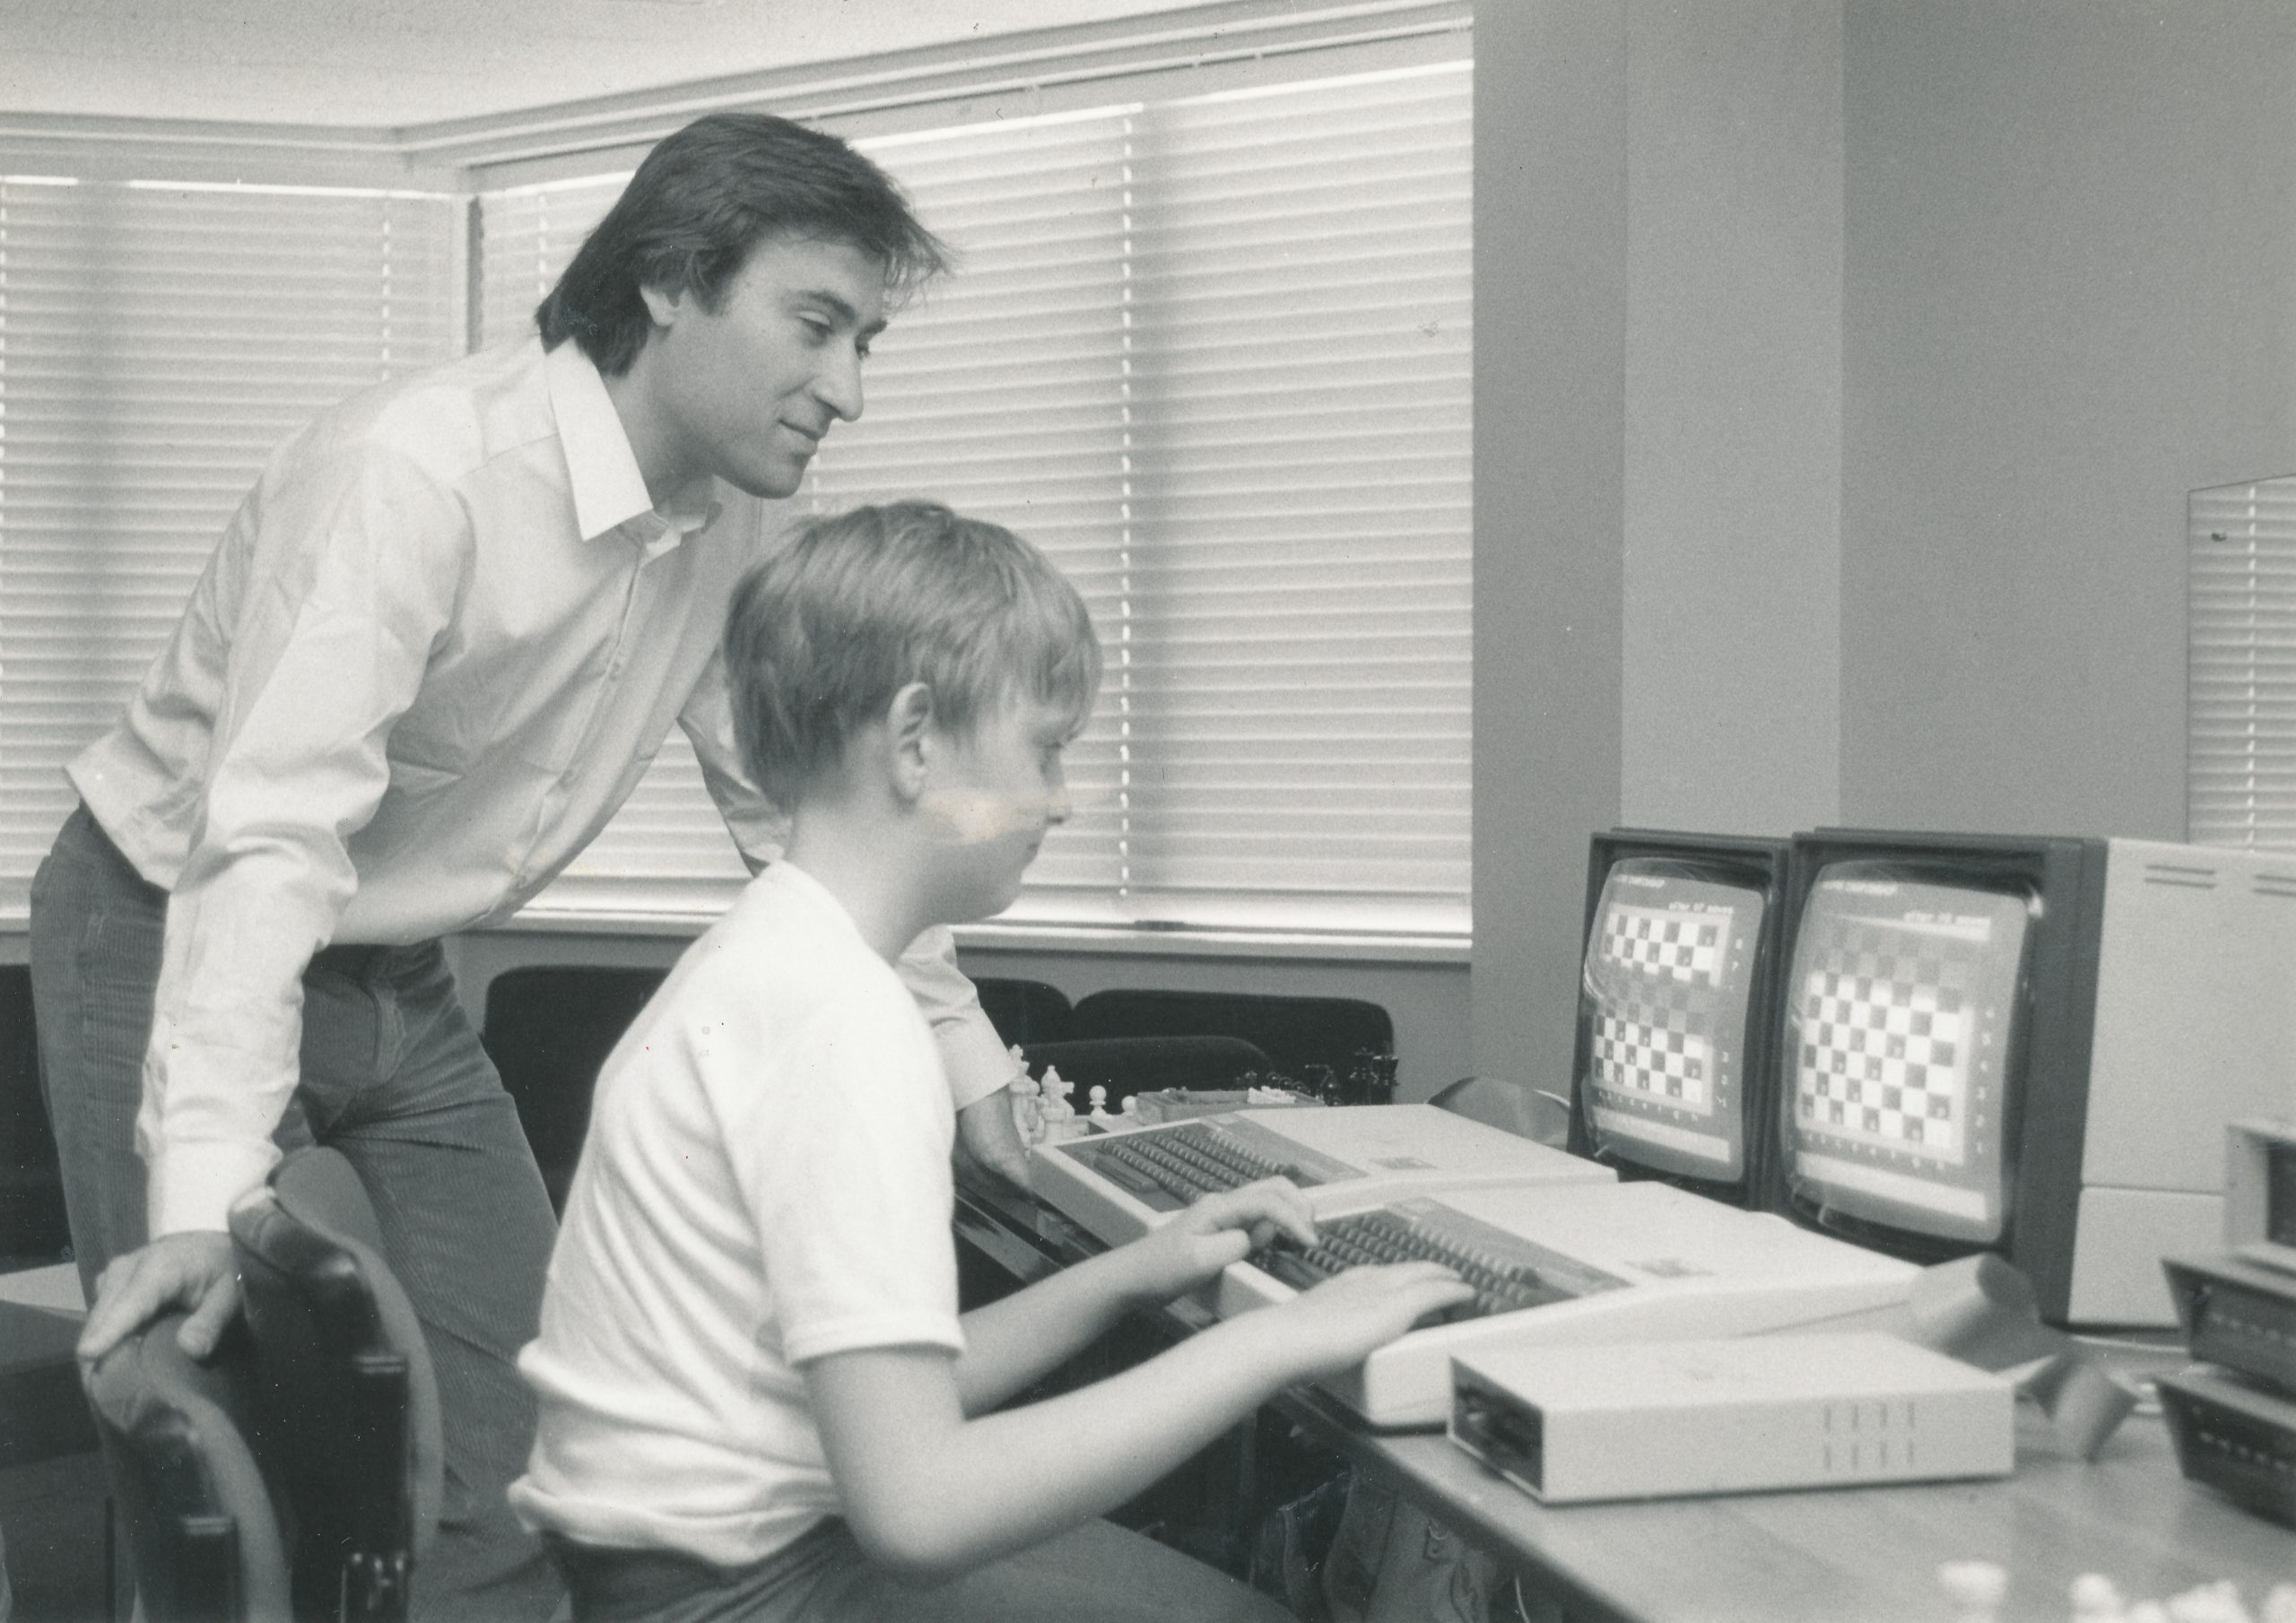 Bill had a keen interest in computer chess and technology